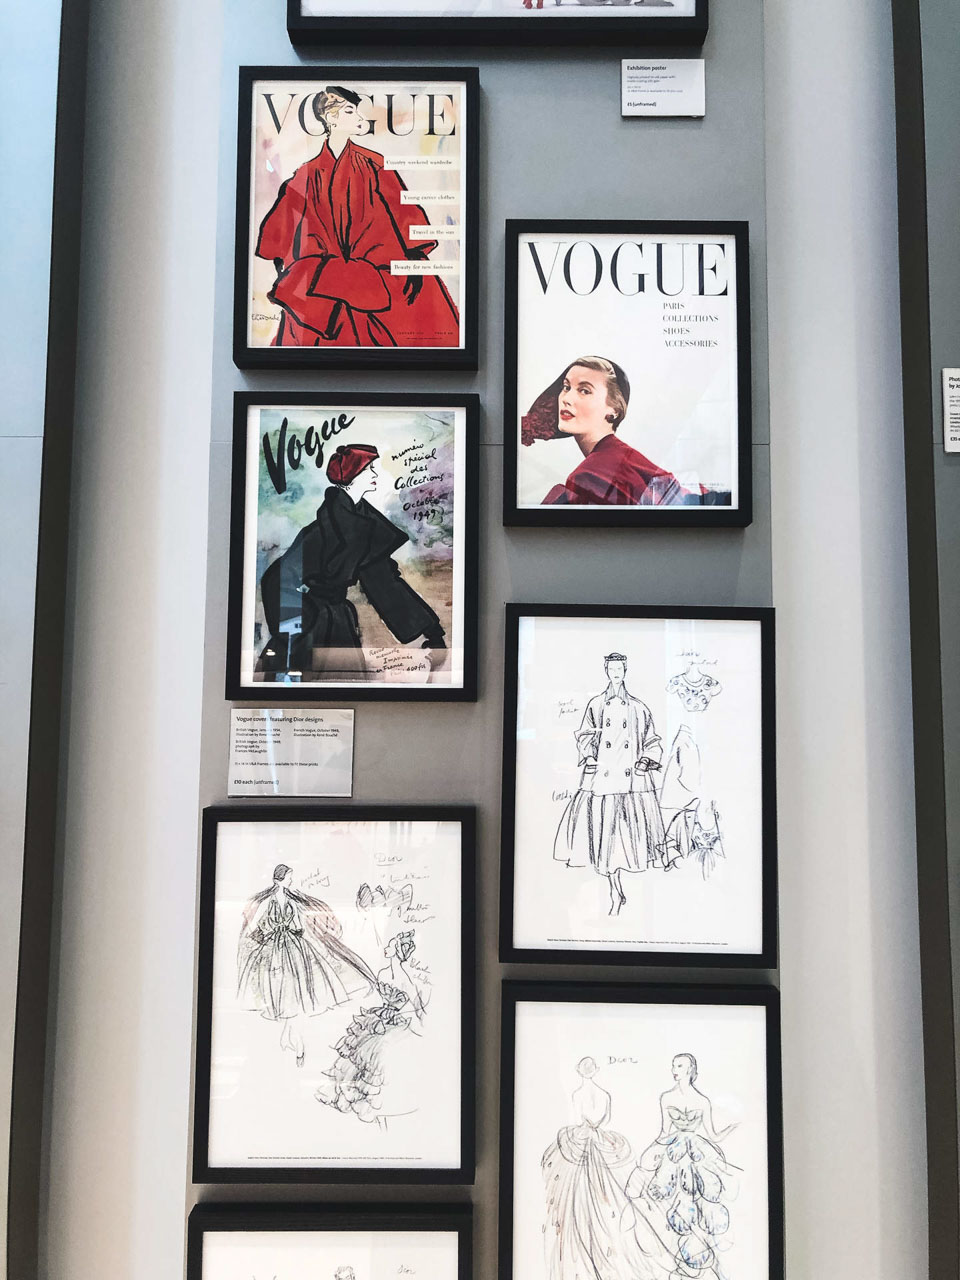 Framed Vogue covers and Dior sketches on the wall of Victoria and Albert Museum in London